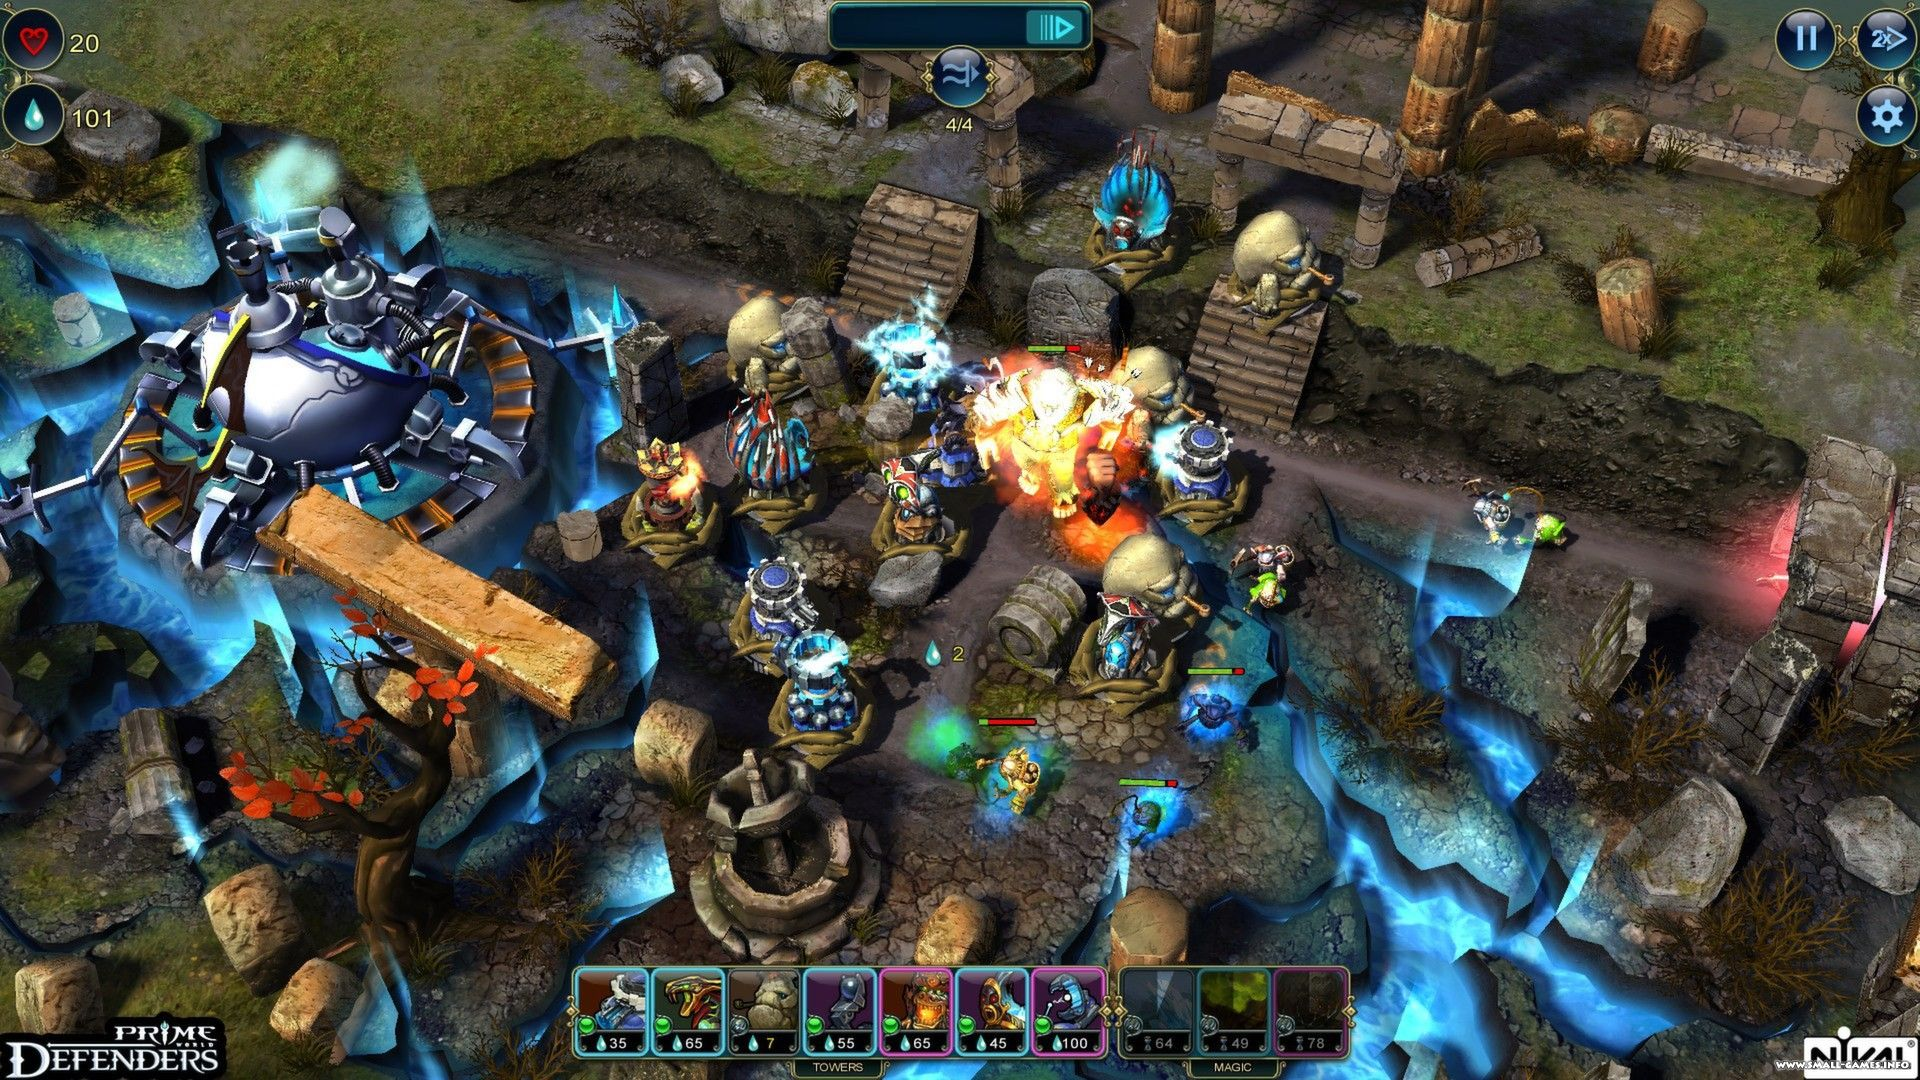 Tower defense game prime world: defenders 2 on android.